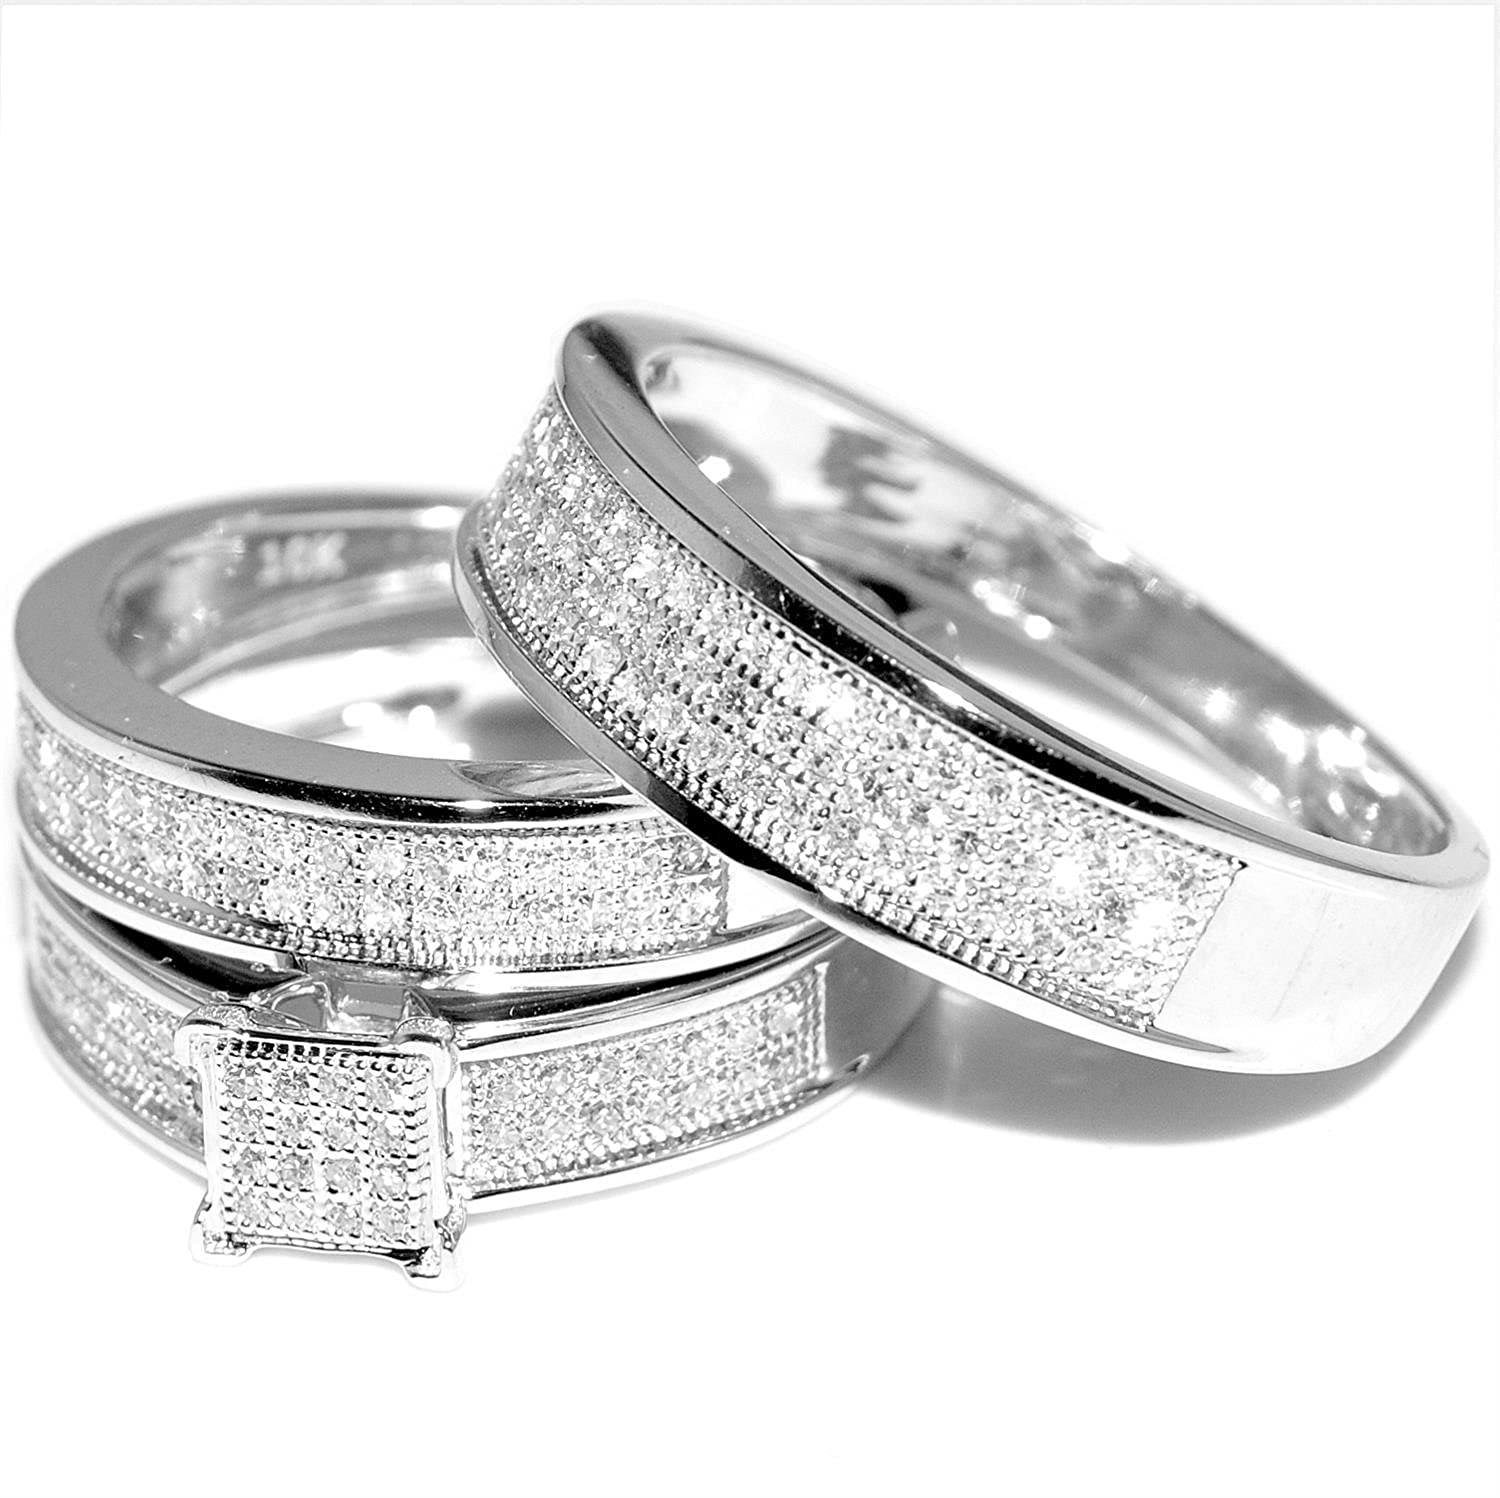 white gold trio wedding set mens womens wedding rings matching 040cttw diamondamazoncom - White Gold Wedding Rings For Her